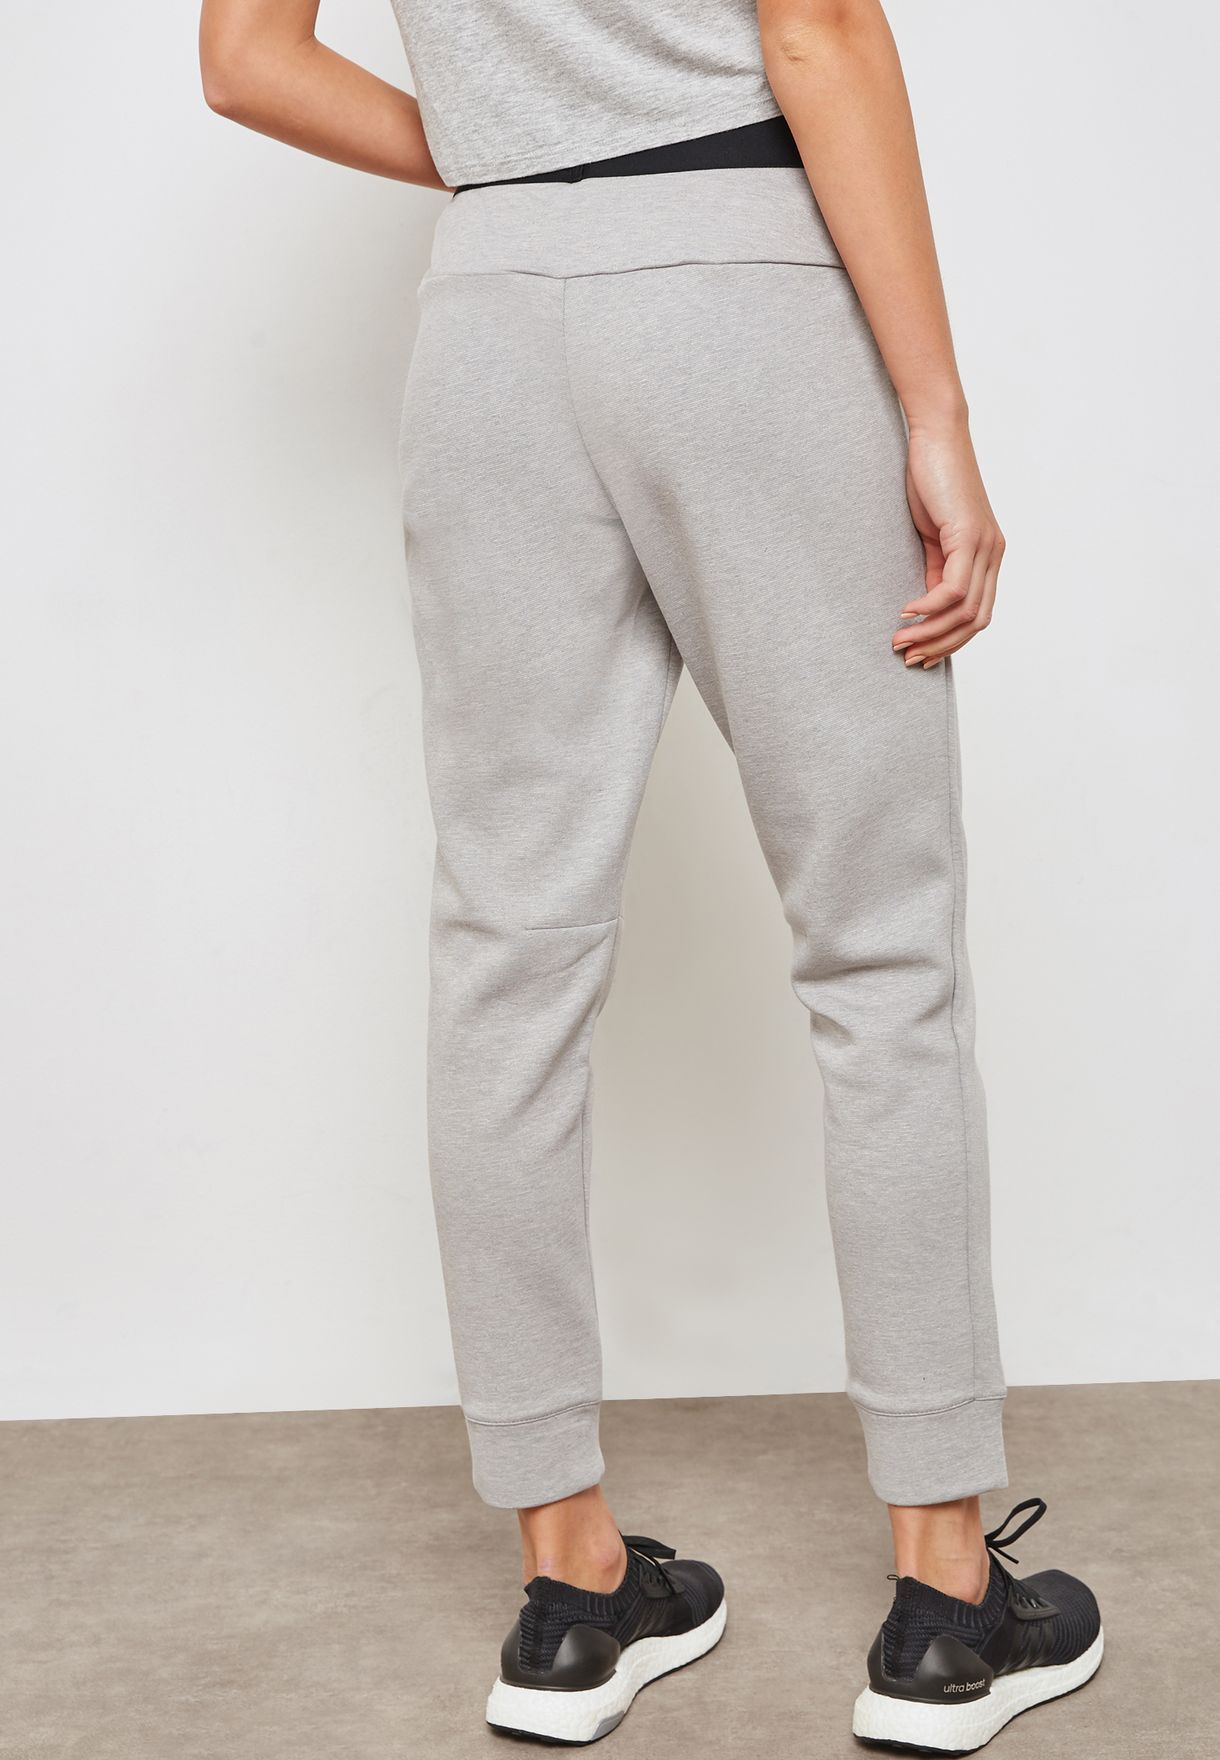 fce77a1e2fff4 Shop adidas grey ID Stadium Sweatpants CZ2937 for Women in Saudi ...